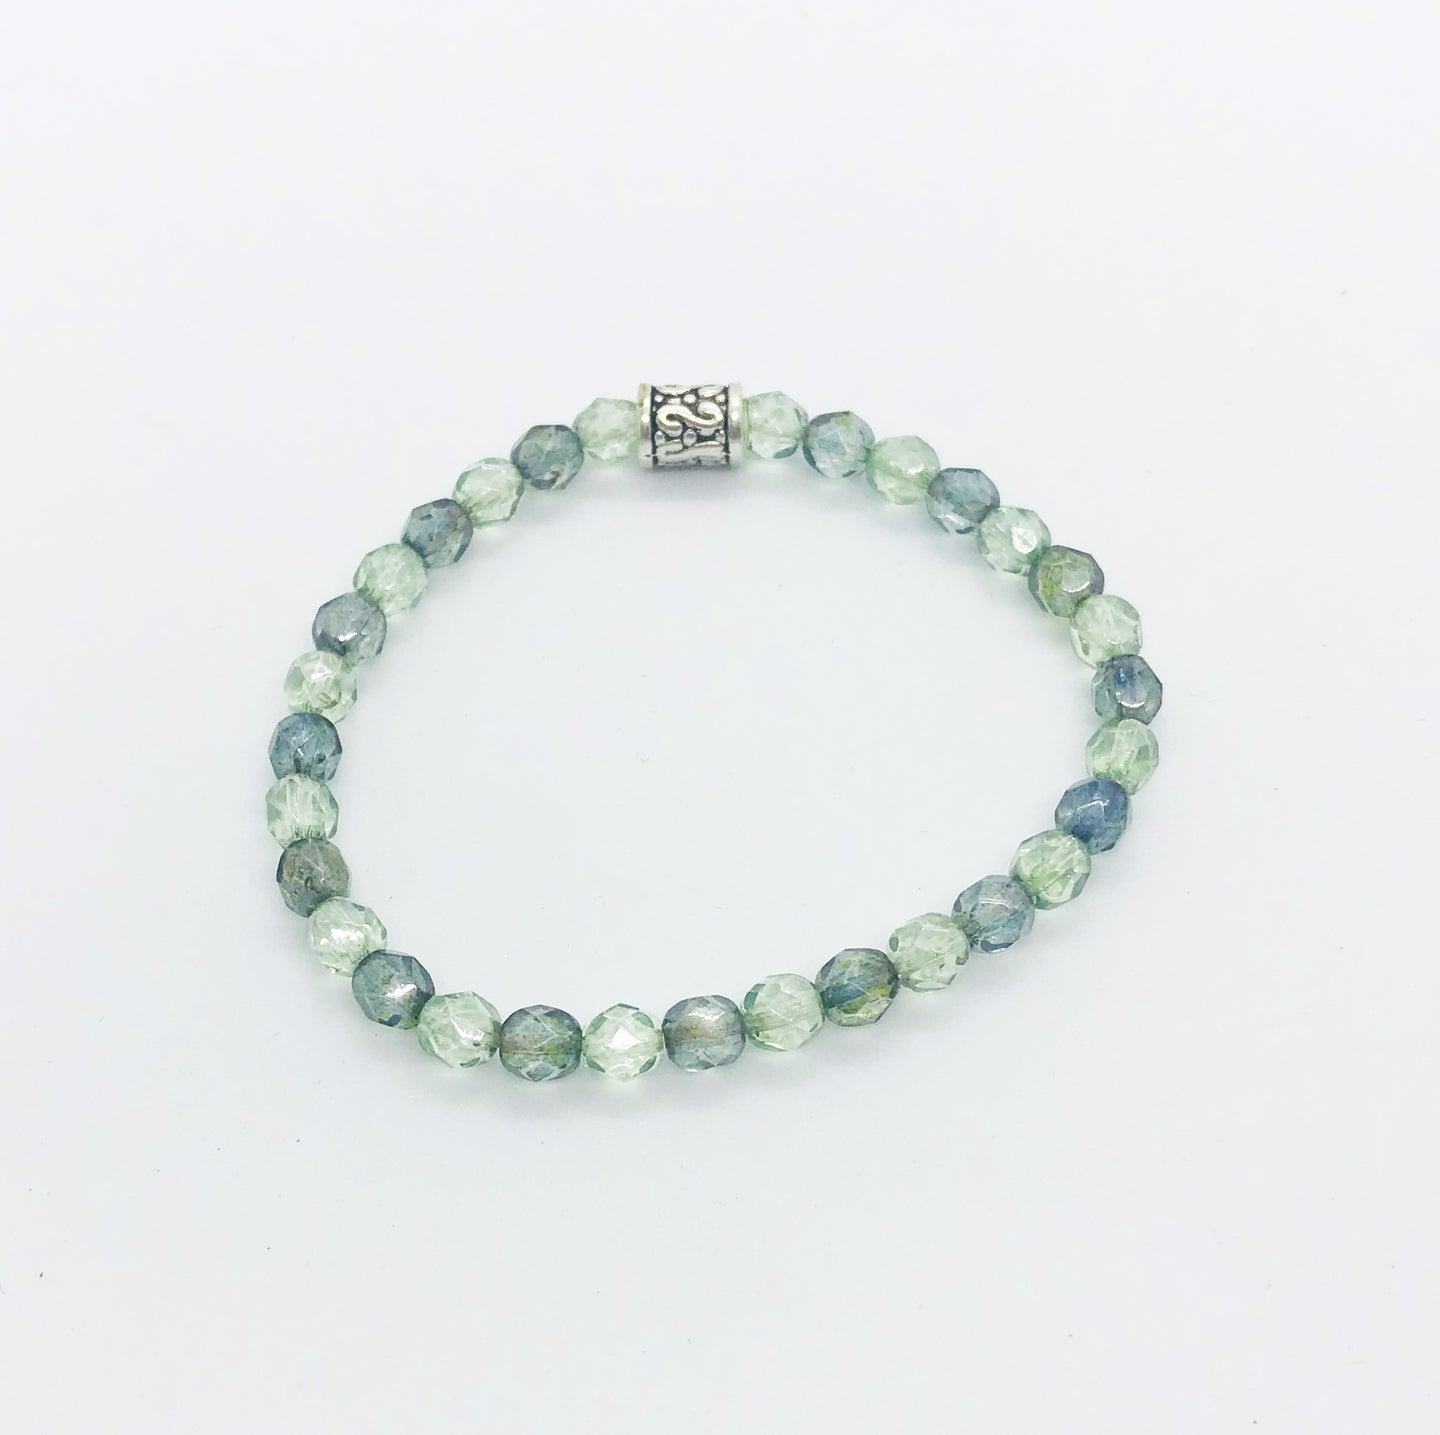 Glass Bead Stretchy Bracelet - B657